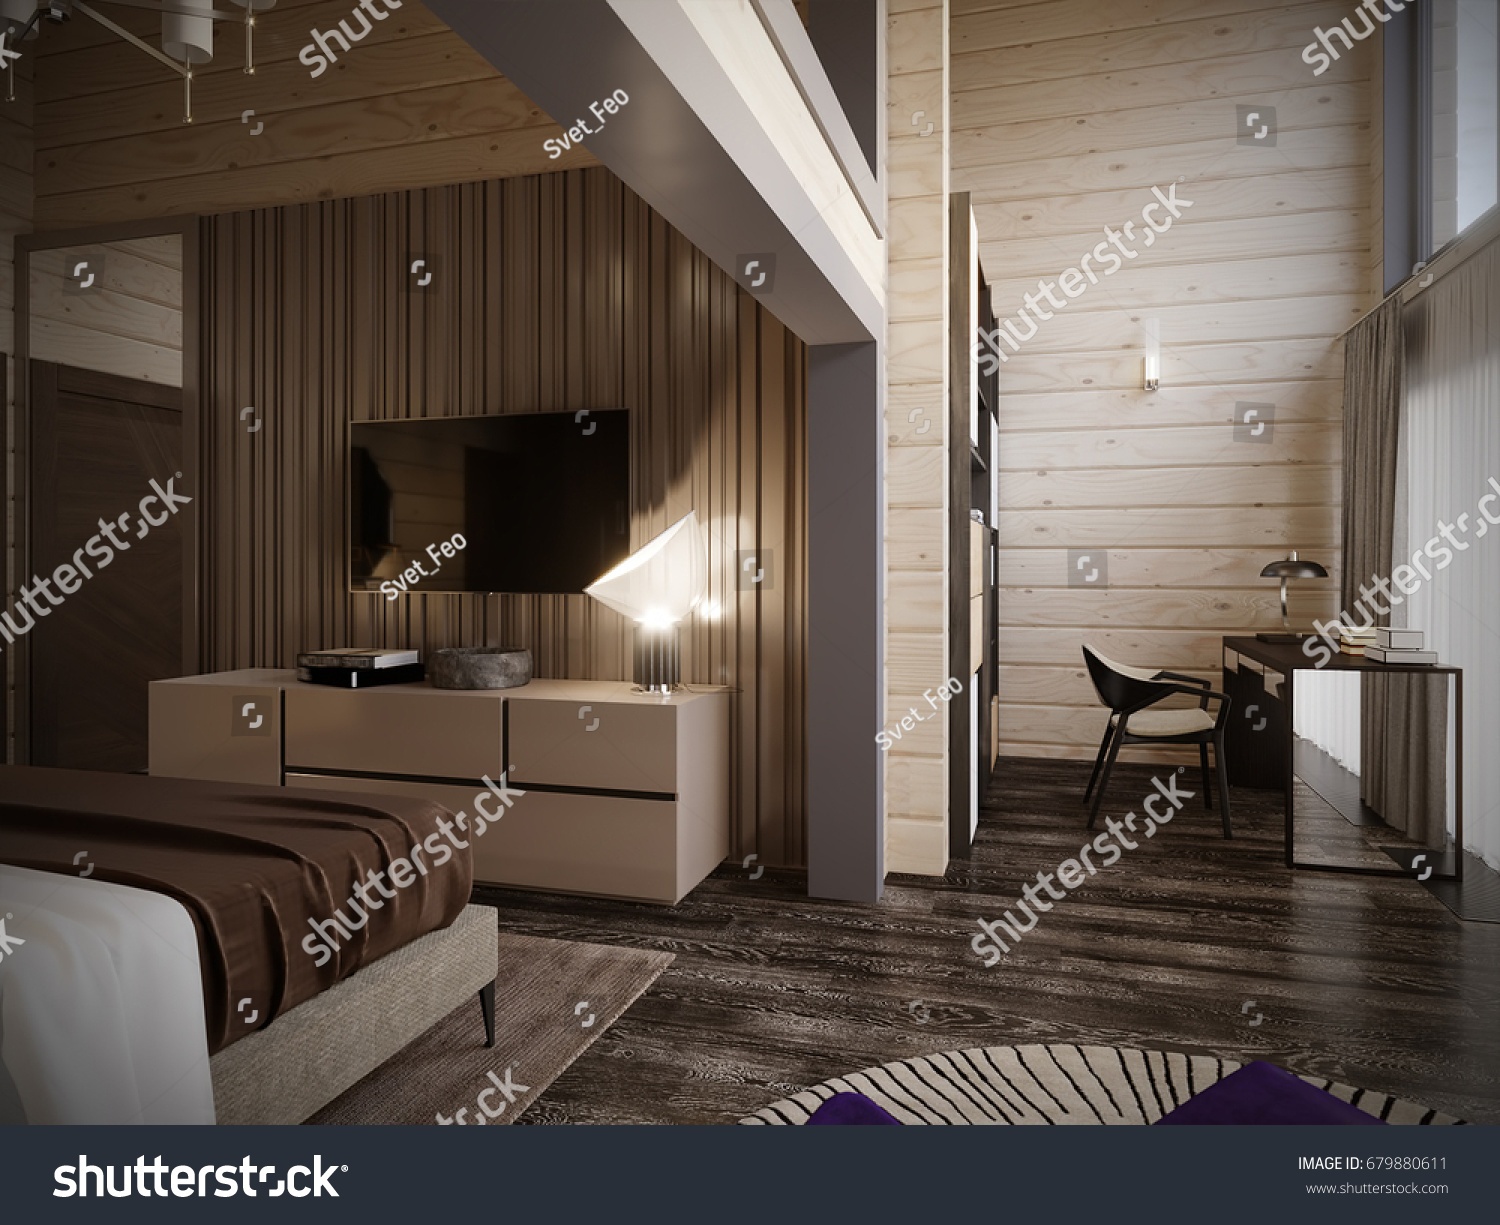 urban contemporary modern classic traditional hotel bedroom interior design in wooden house with blockhouse walls - Traditional Hotel Interior